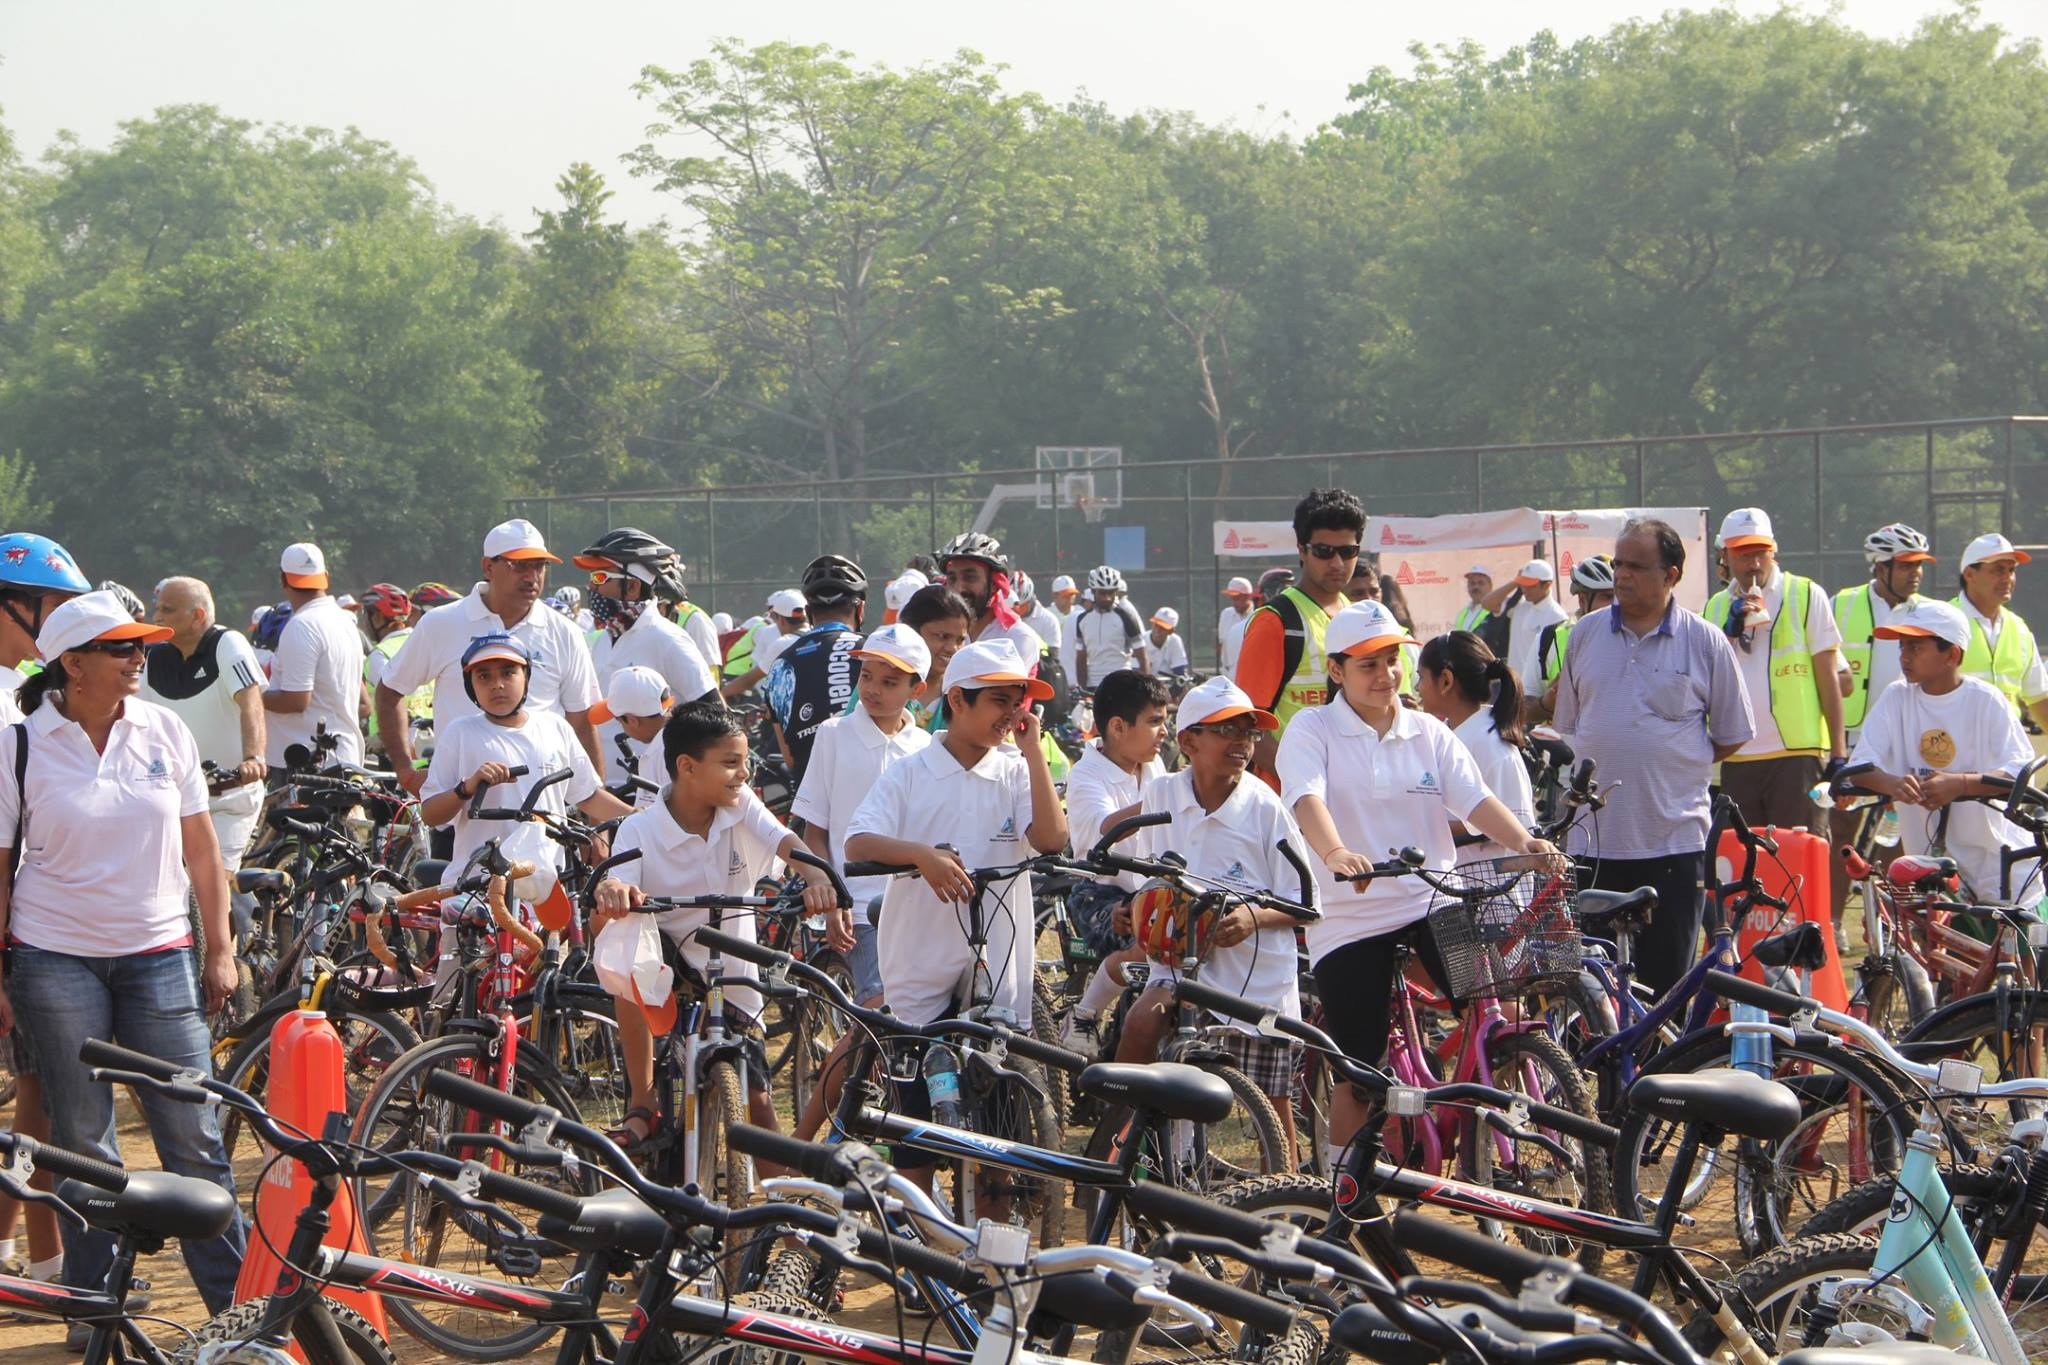 Road Safety Cyclothon - 4